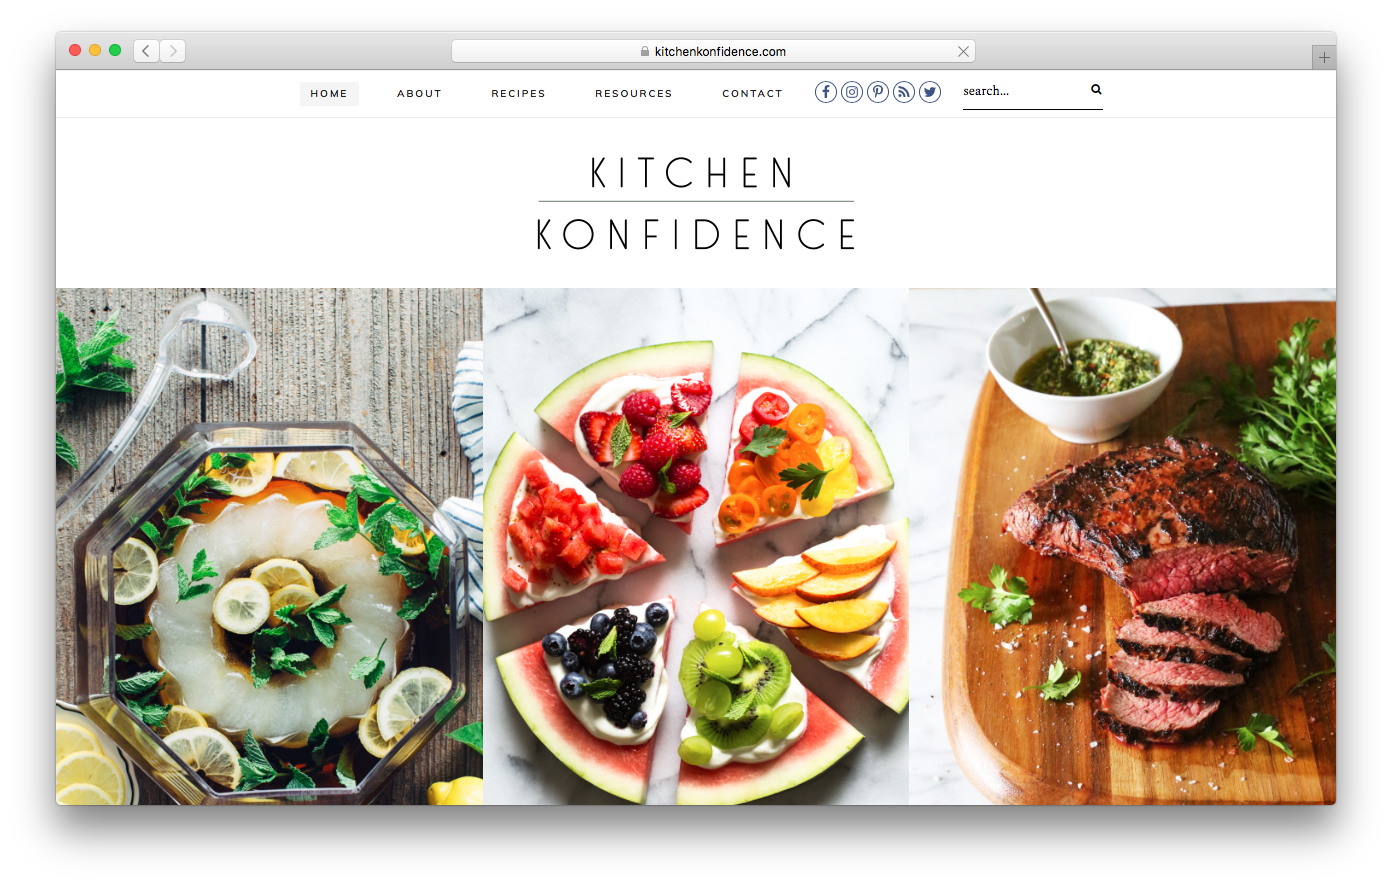 KitchenKonfidence homepage